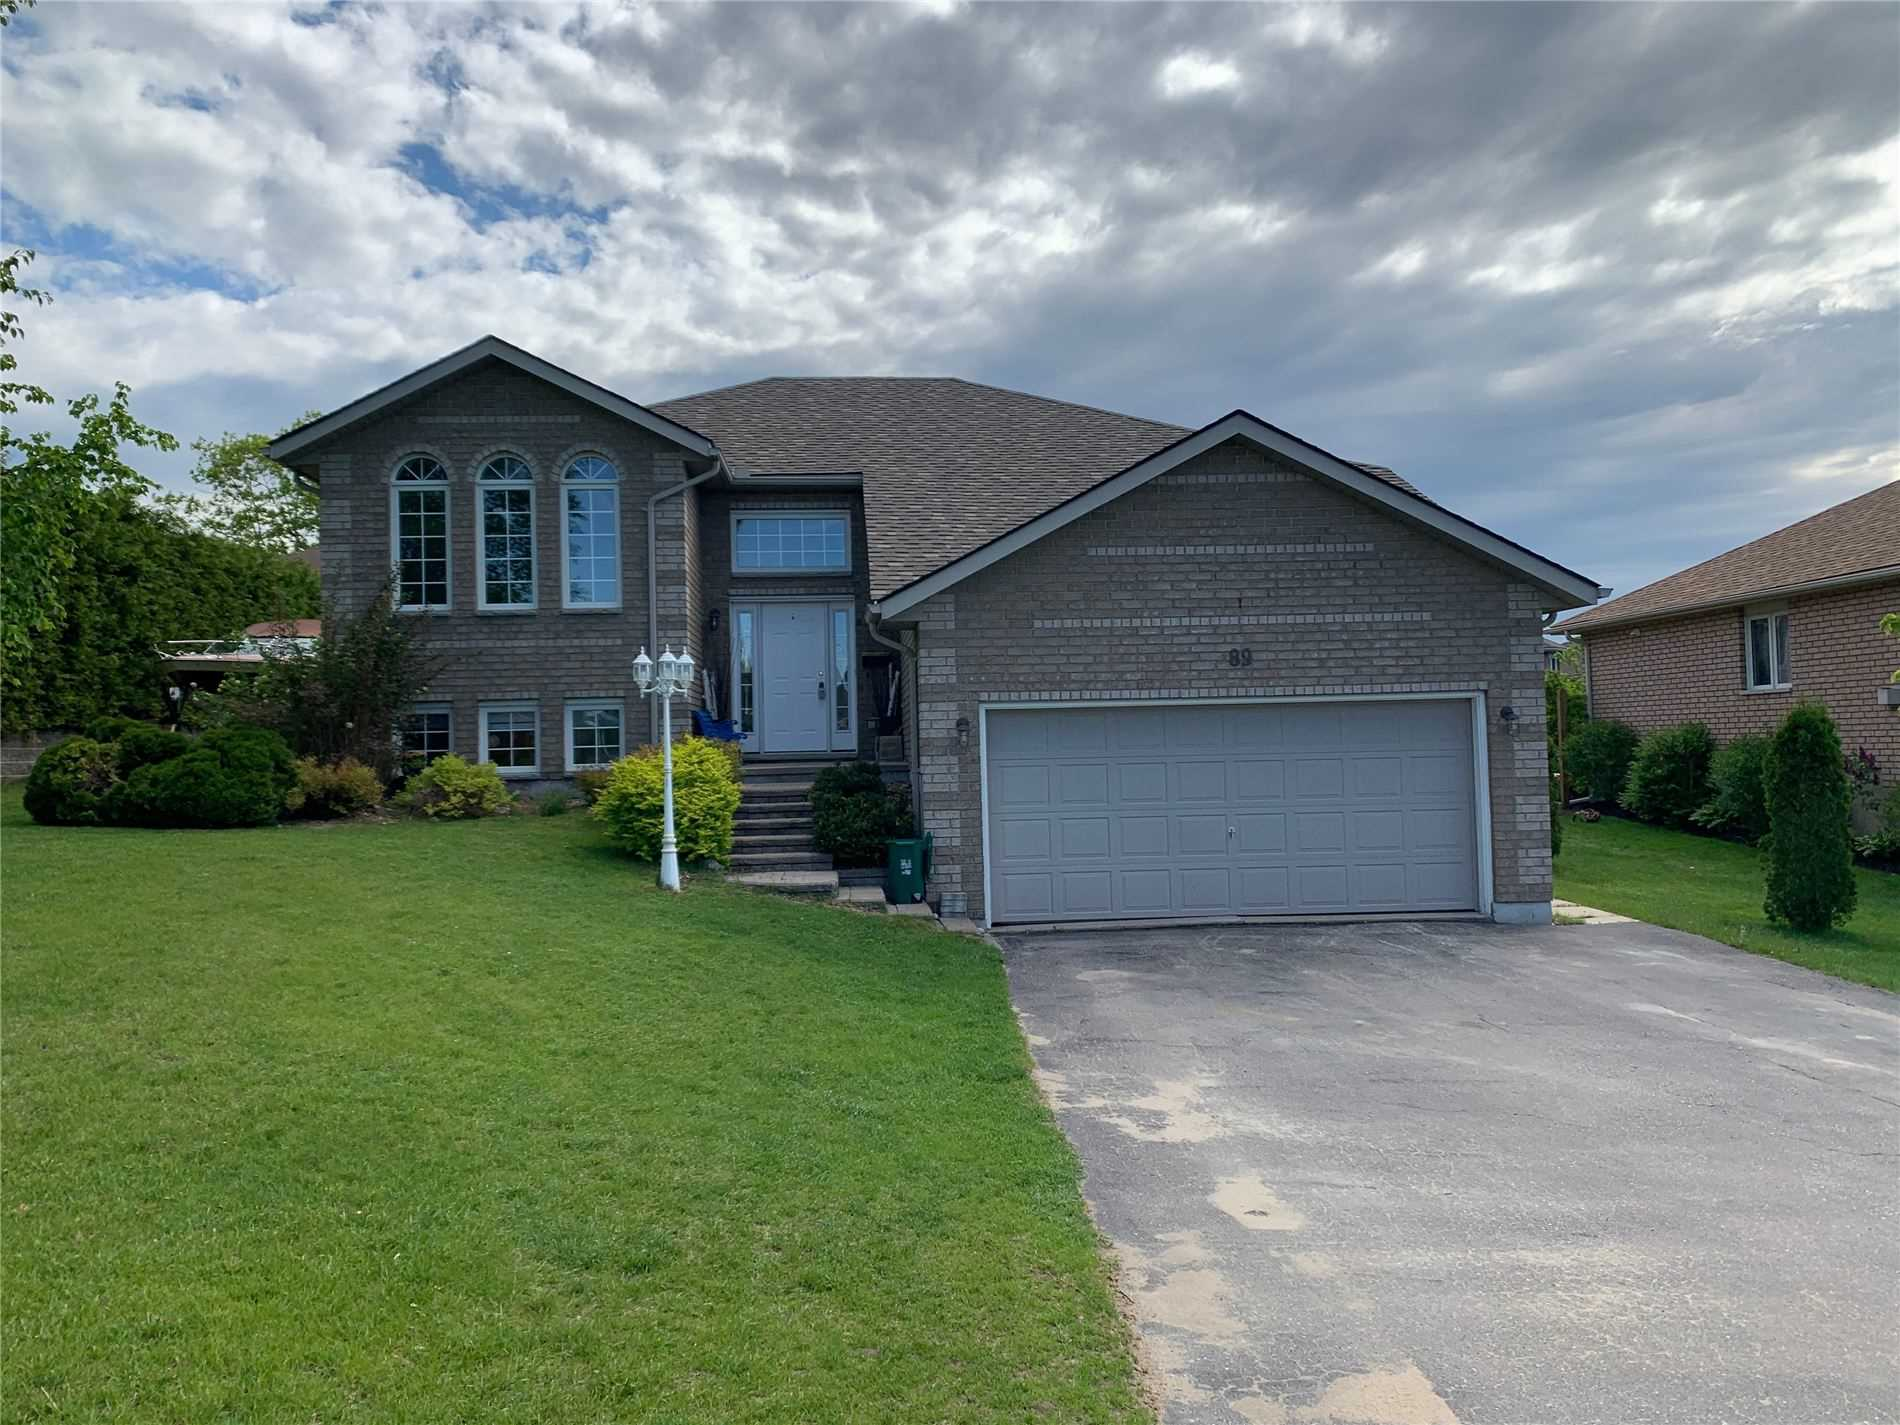 pictures of house for sale MLS: S4696953 located at 89 Maria St, Penetanguishene L9M2J1